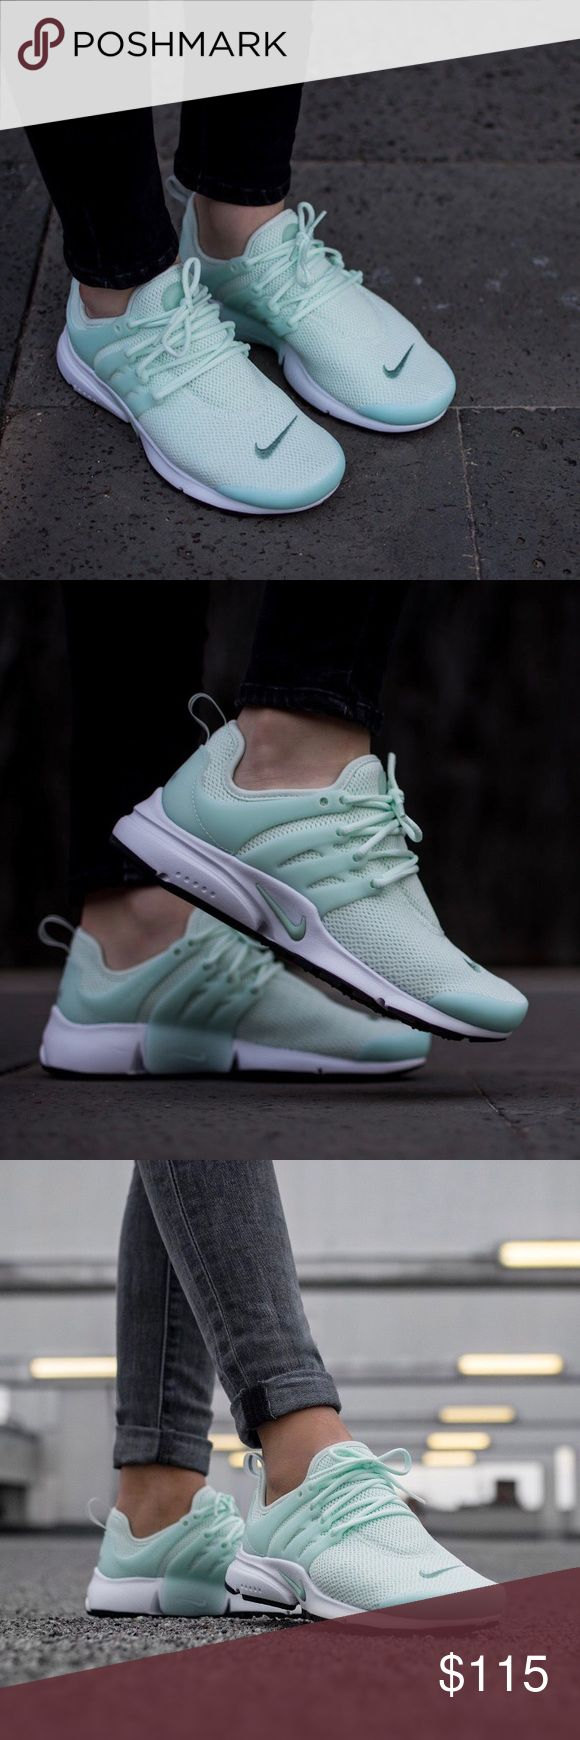 Nike Mint Green Presto Sneakers •Mint green Prestos  •Women's size 8, whole sizes only. Will fit a 7.5/8.  •New in box, no lid.  •No trades, no holds. Nike Shoes Sneakers